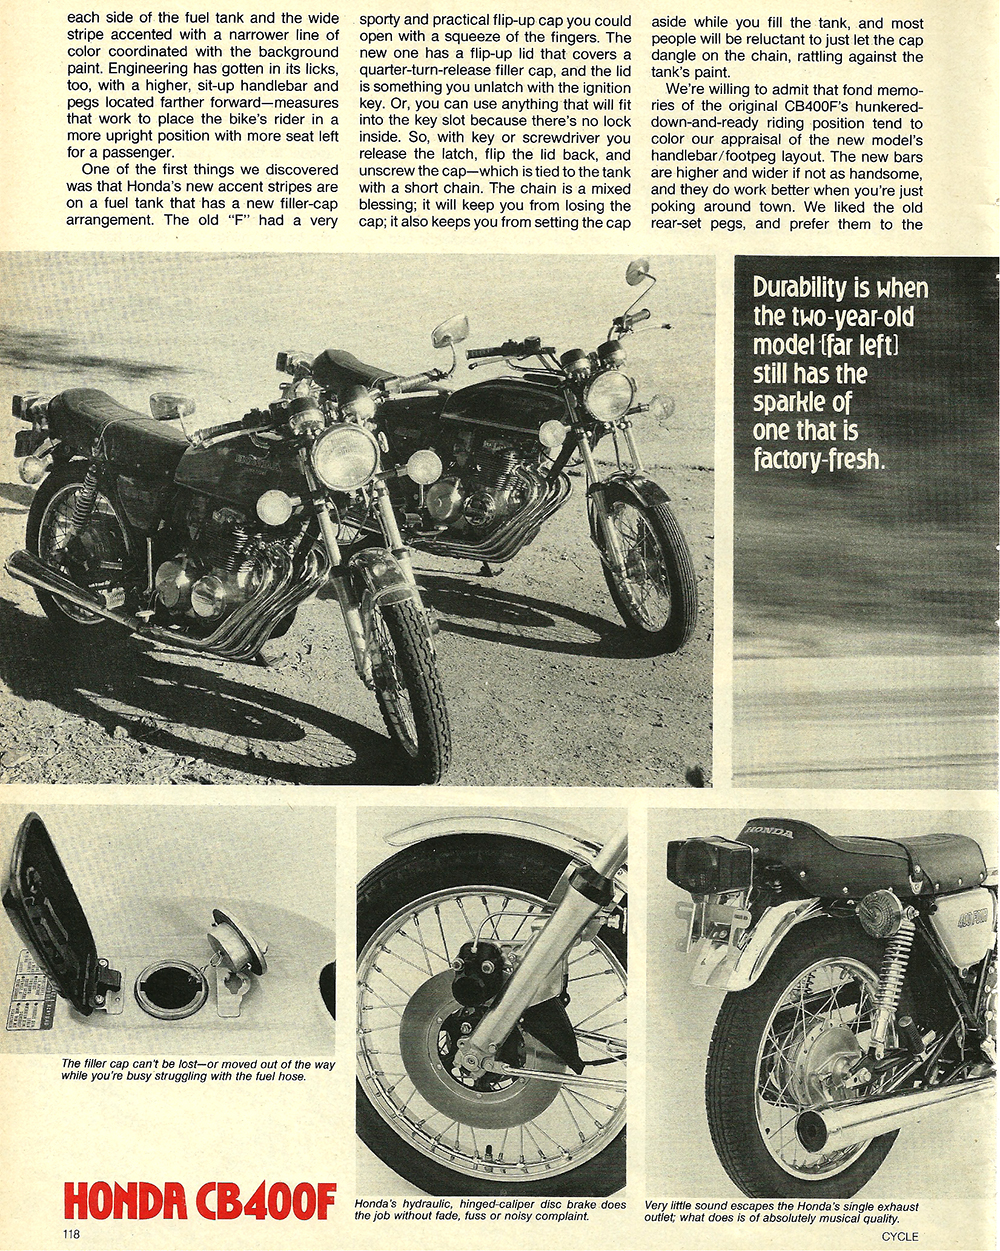 1977 Honda CB400F road test 02.jpg